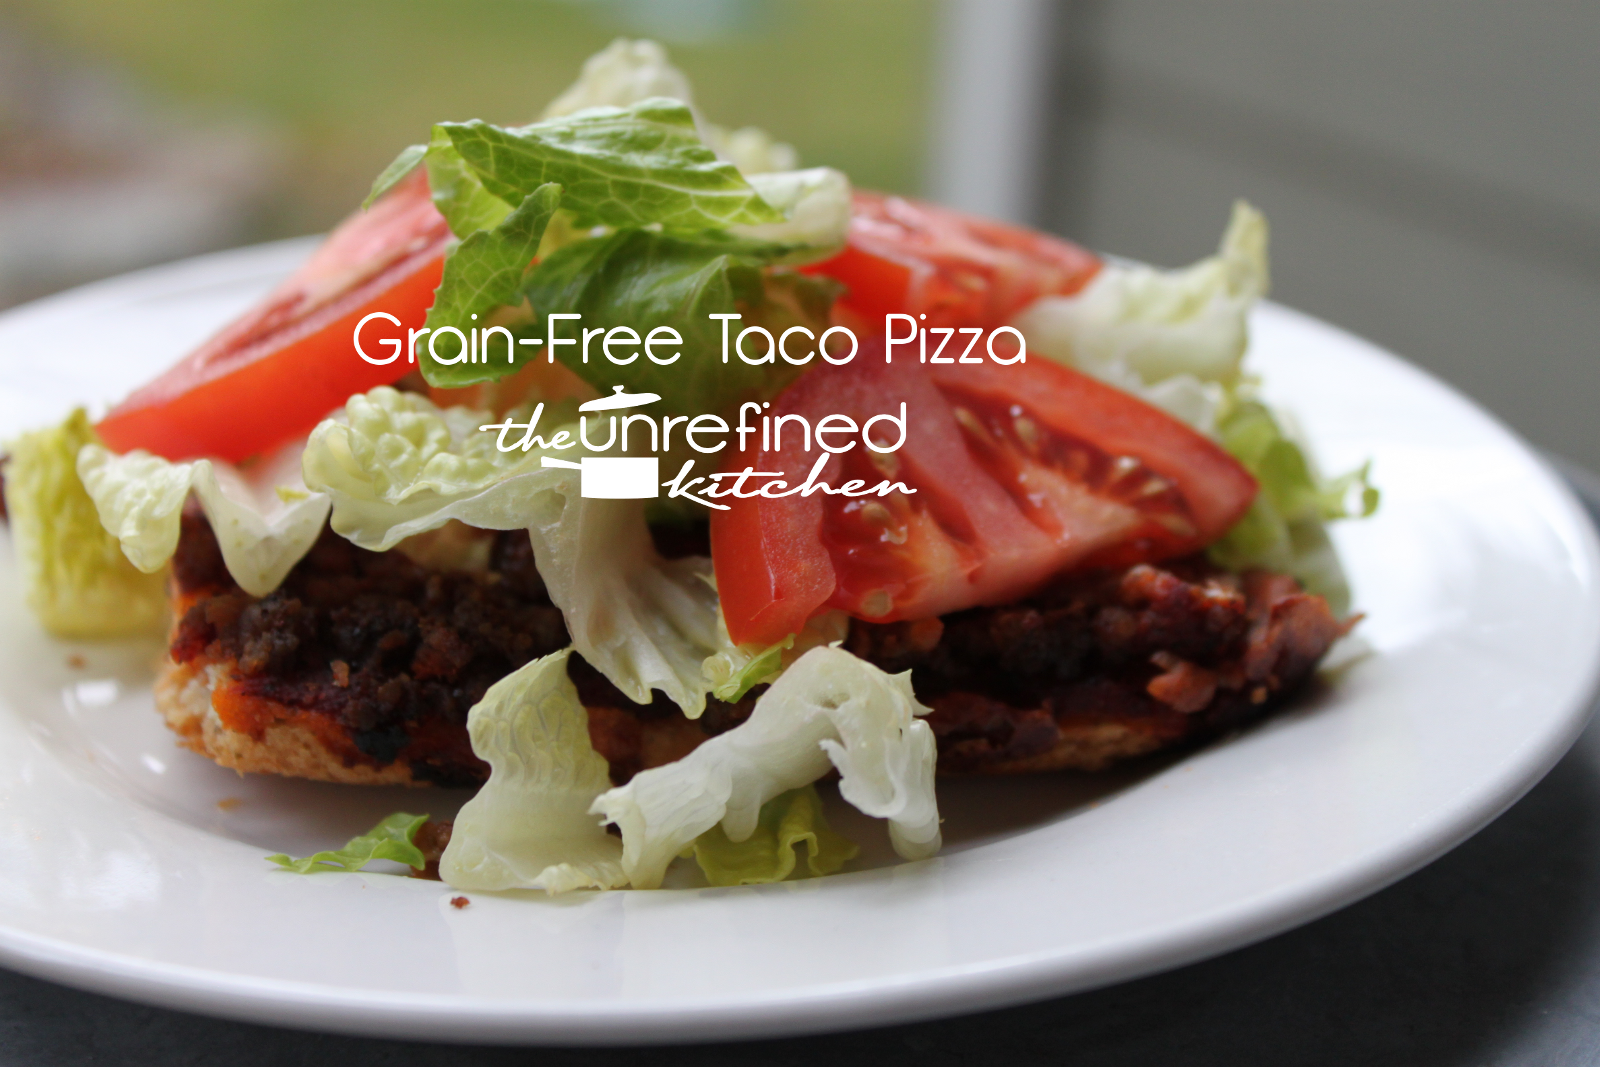 Taco Pizza (Grain-free)